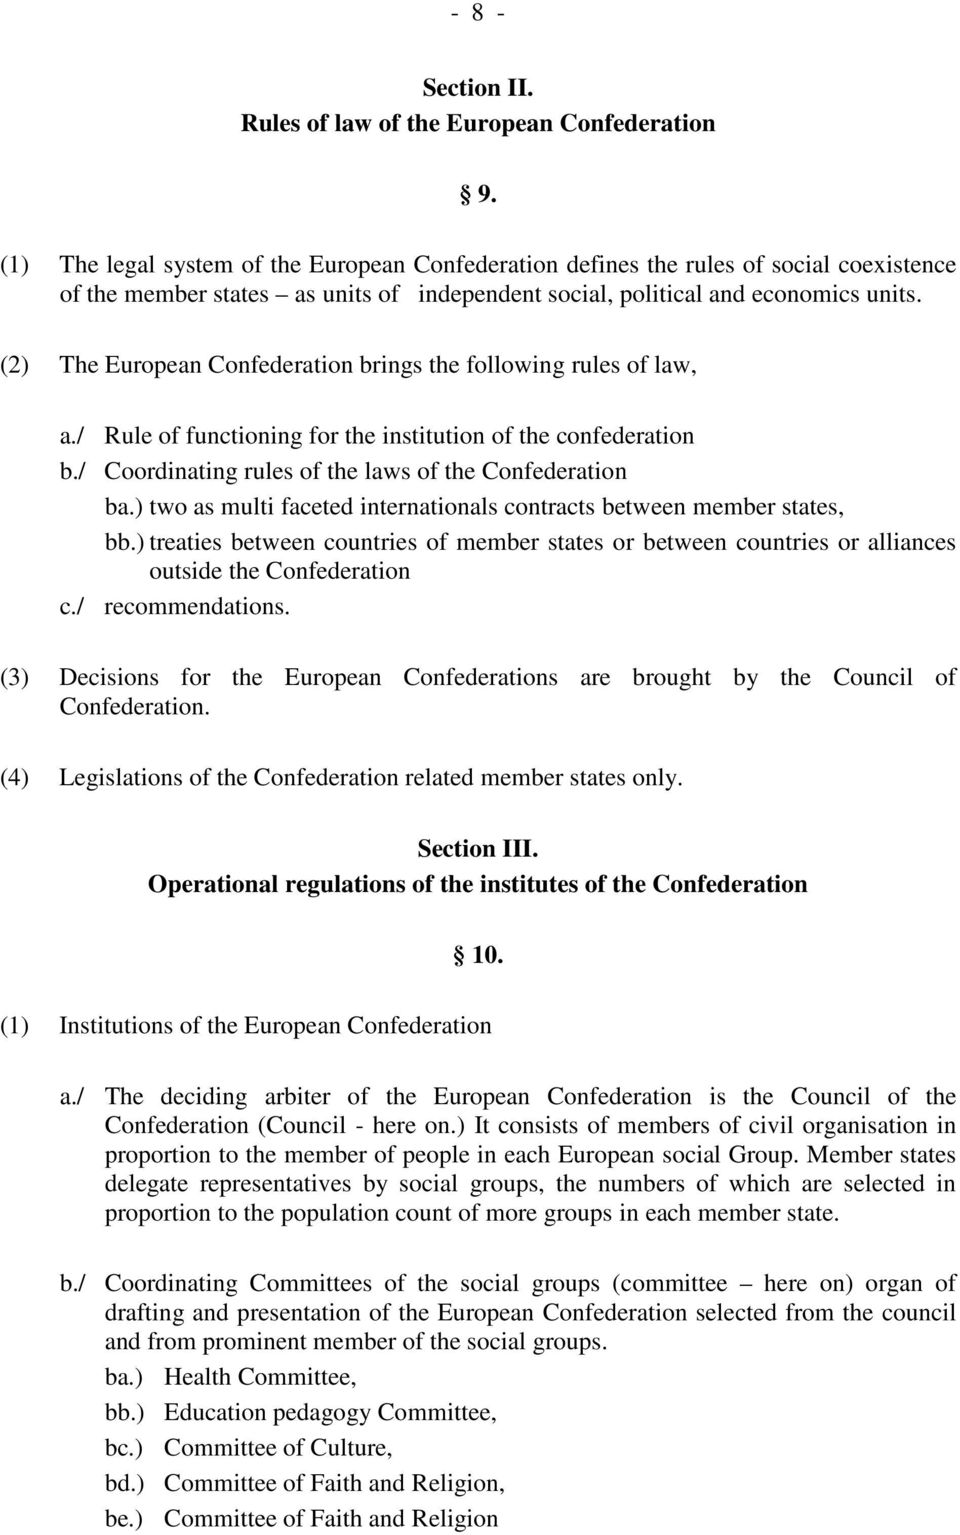 (2) The European Confederation brings the following rules of law, a./ Rule of functioning for the institution of the confederation b./ Coordinating rules of the laws of the Confederation ba.